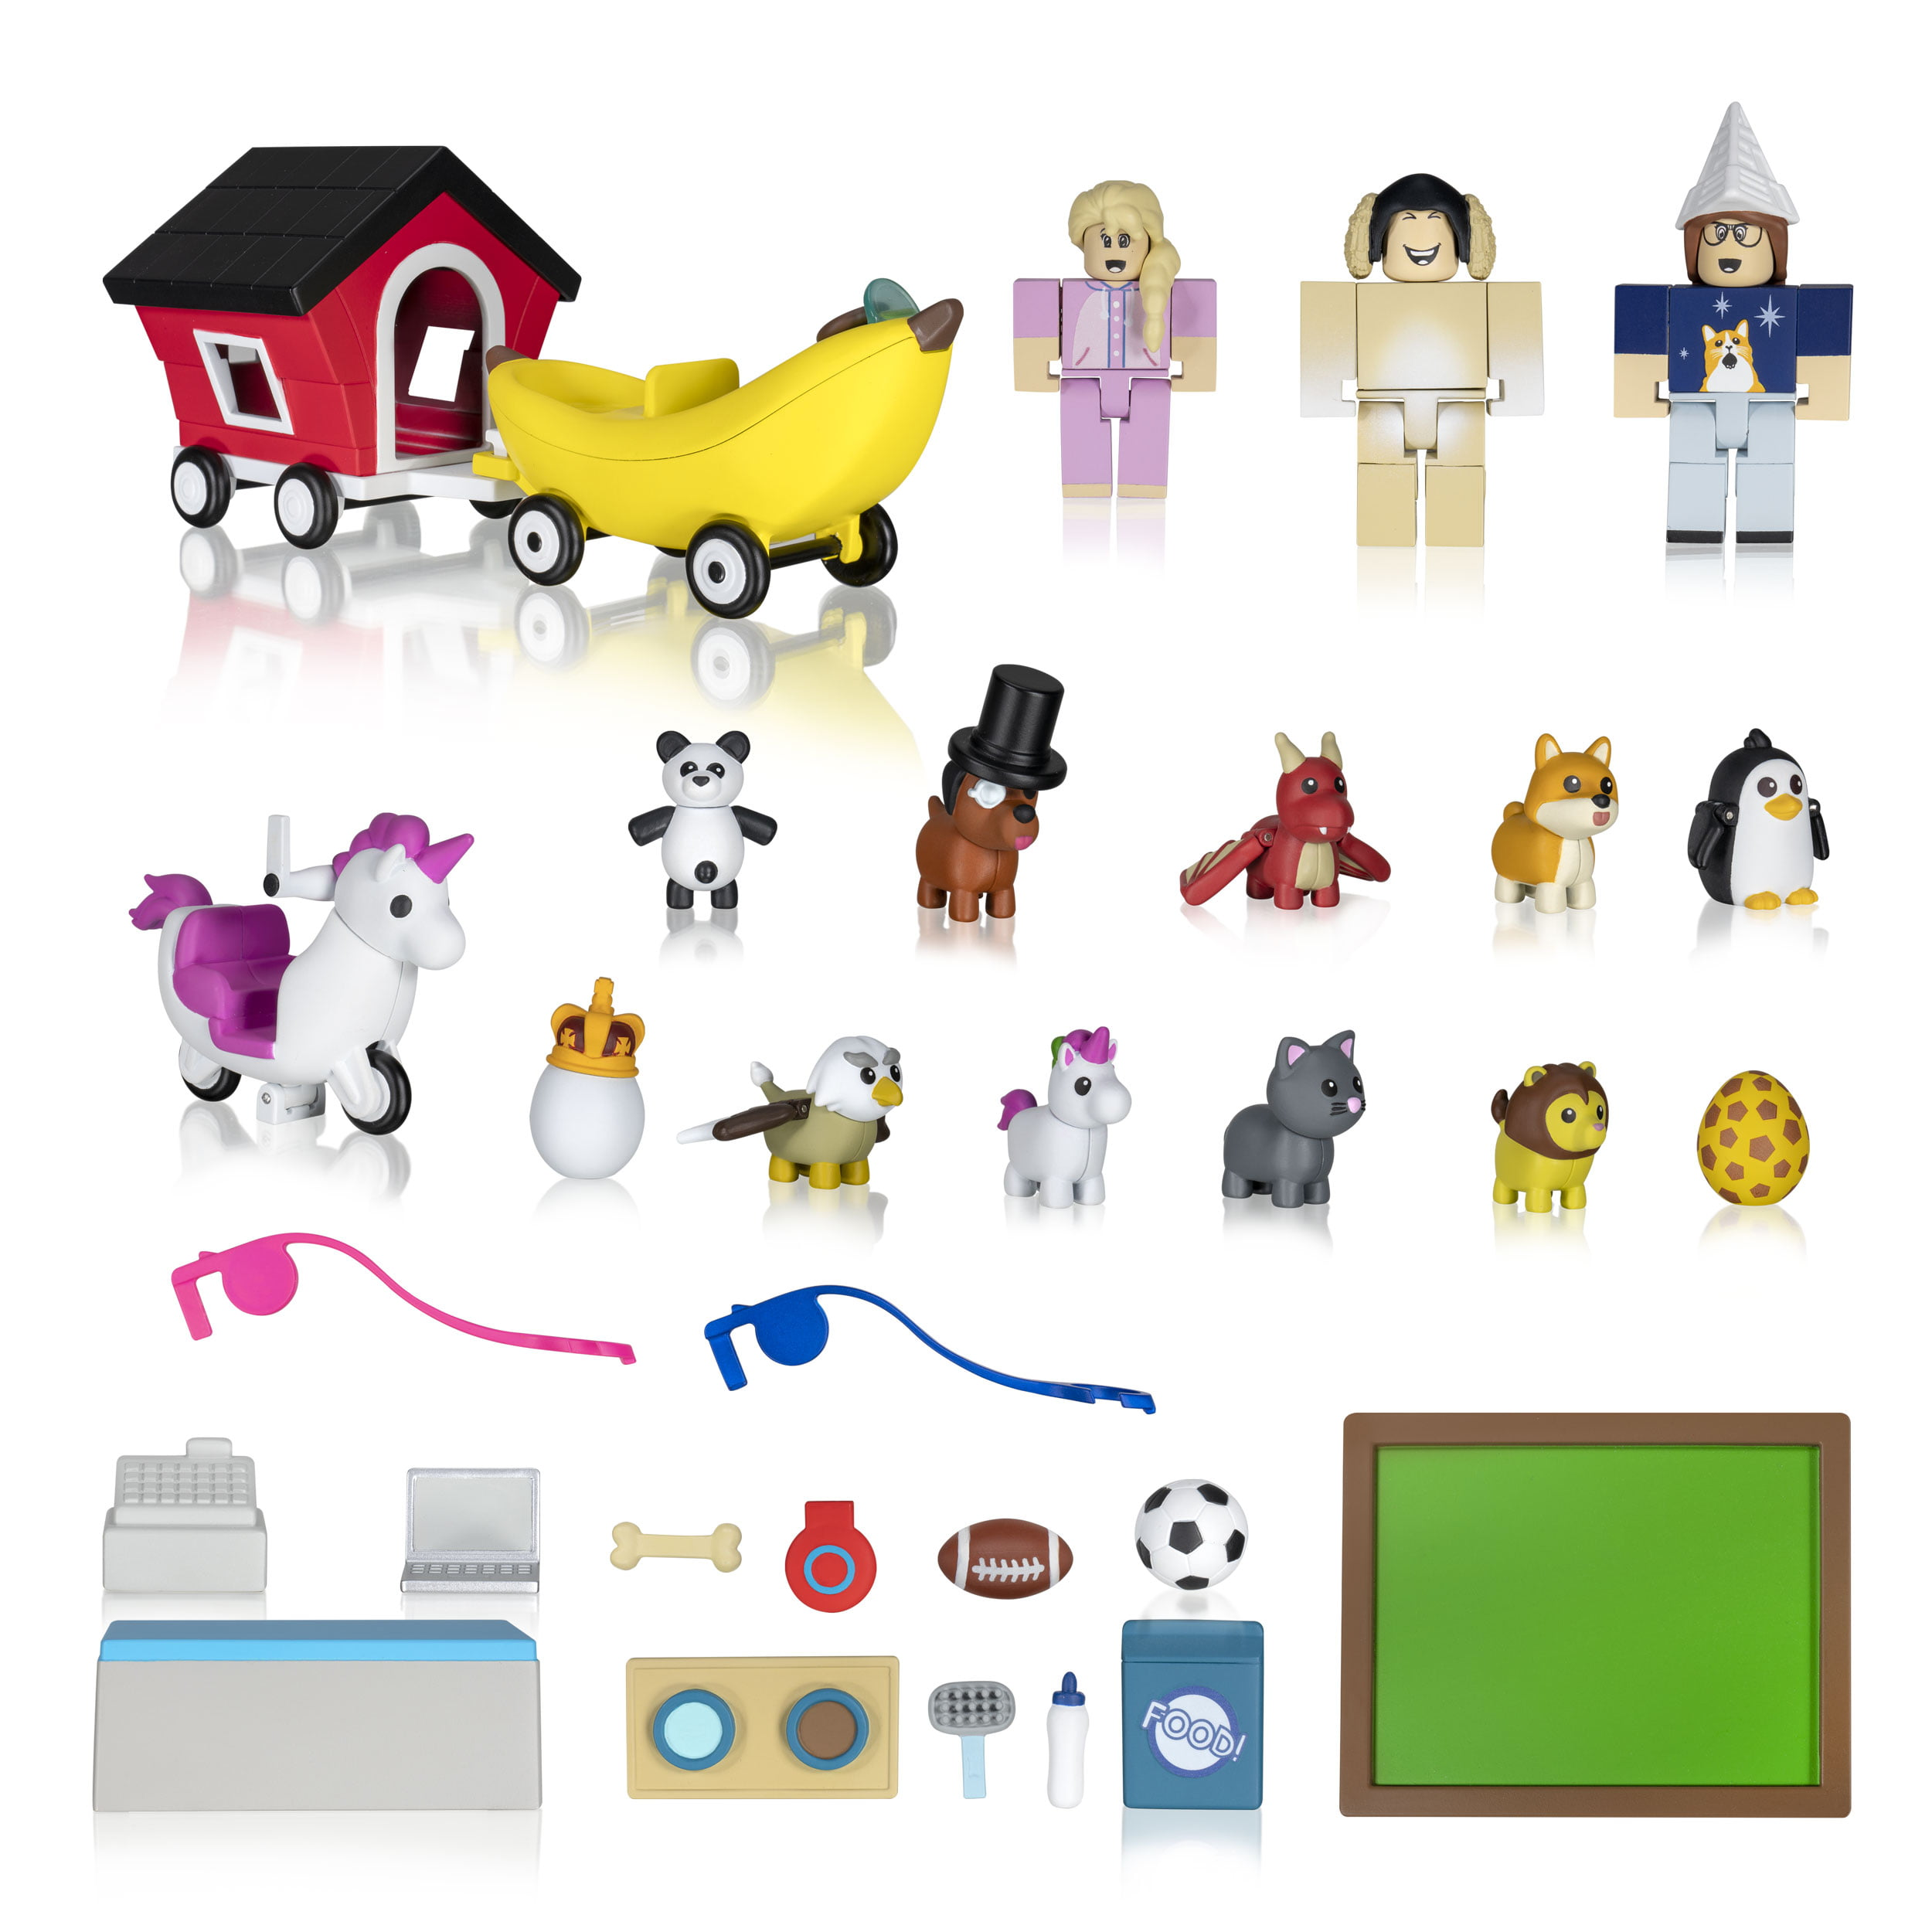 Roblox Celebrity Collection Adopt Me Pet Store Deluxe Playset Includes Exclusive Virtual Item Walmart Com Walmart Com